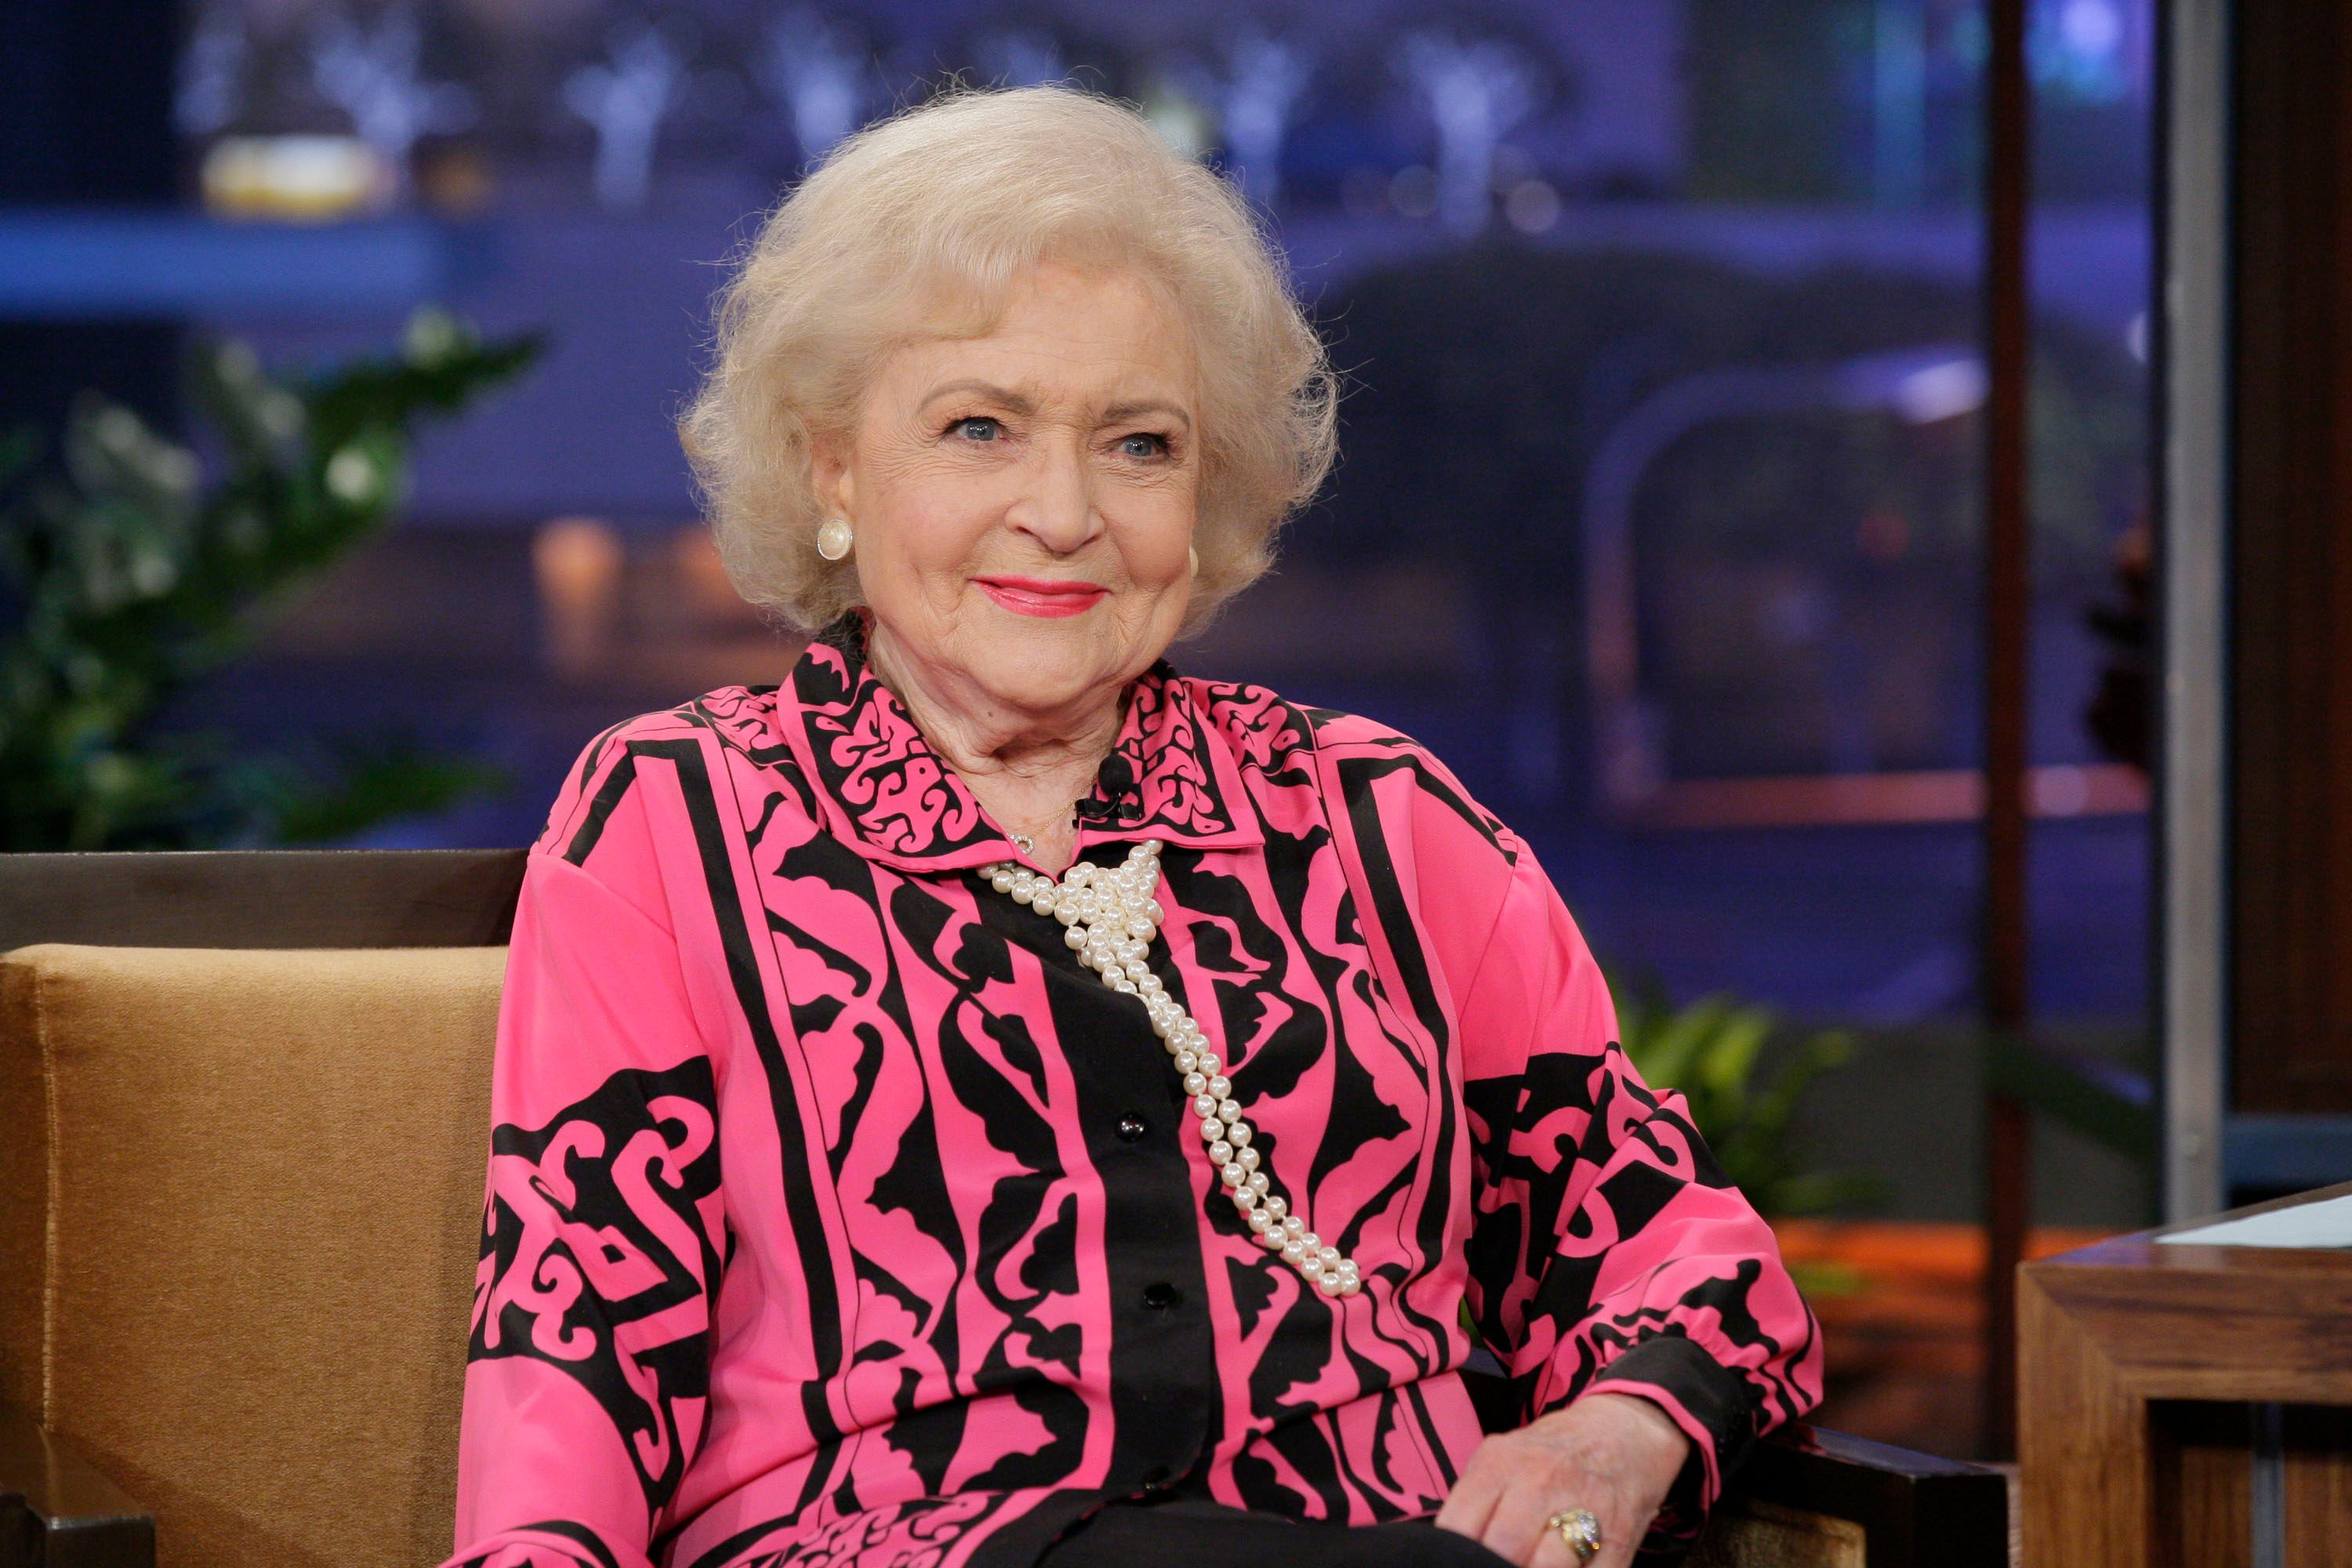 Betty White during an interview in July 2012 | Source: Getty Images